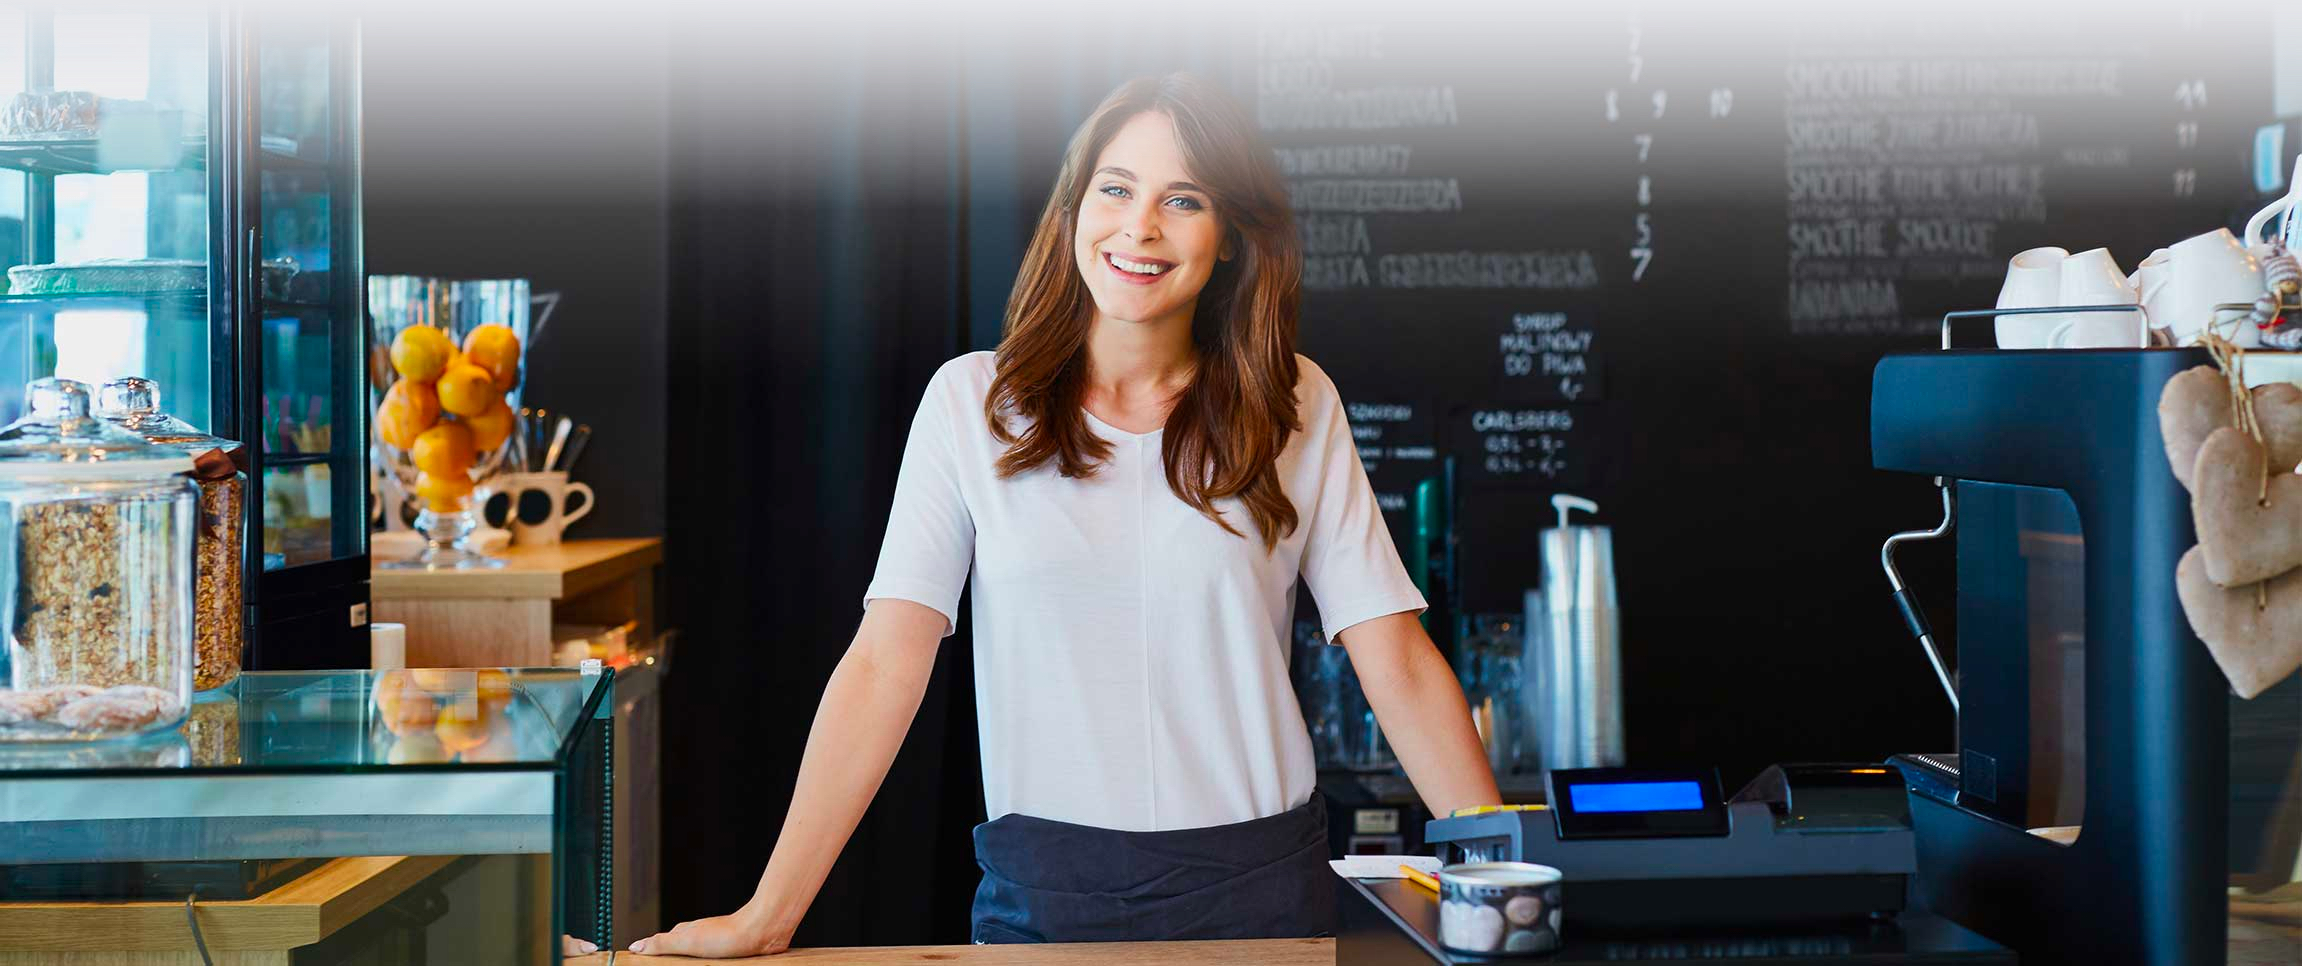 Woman standing at Coffee Shop counter